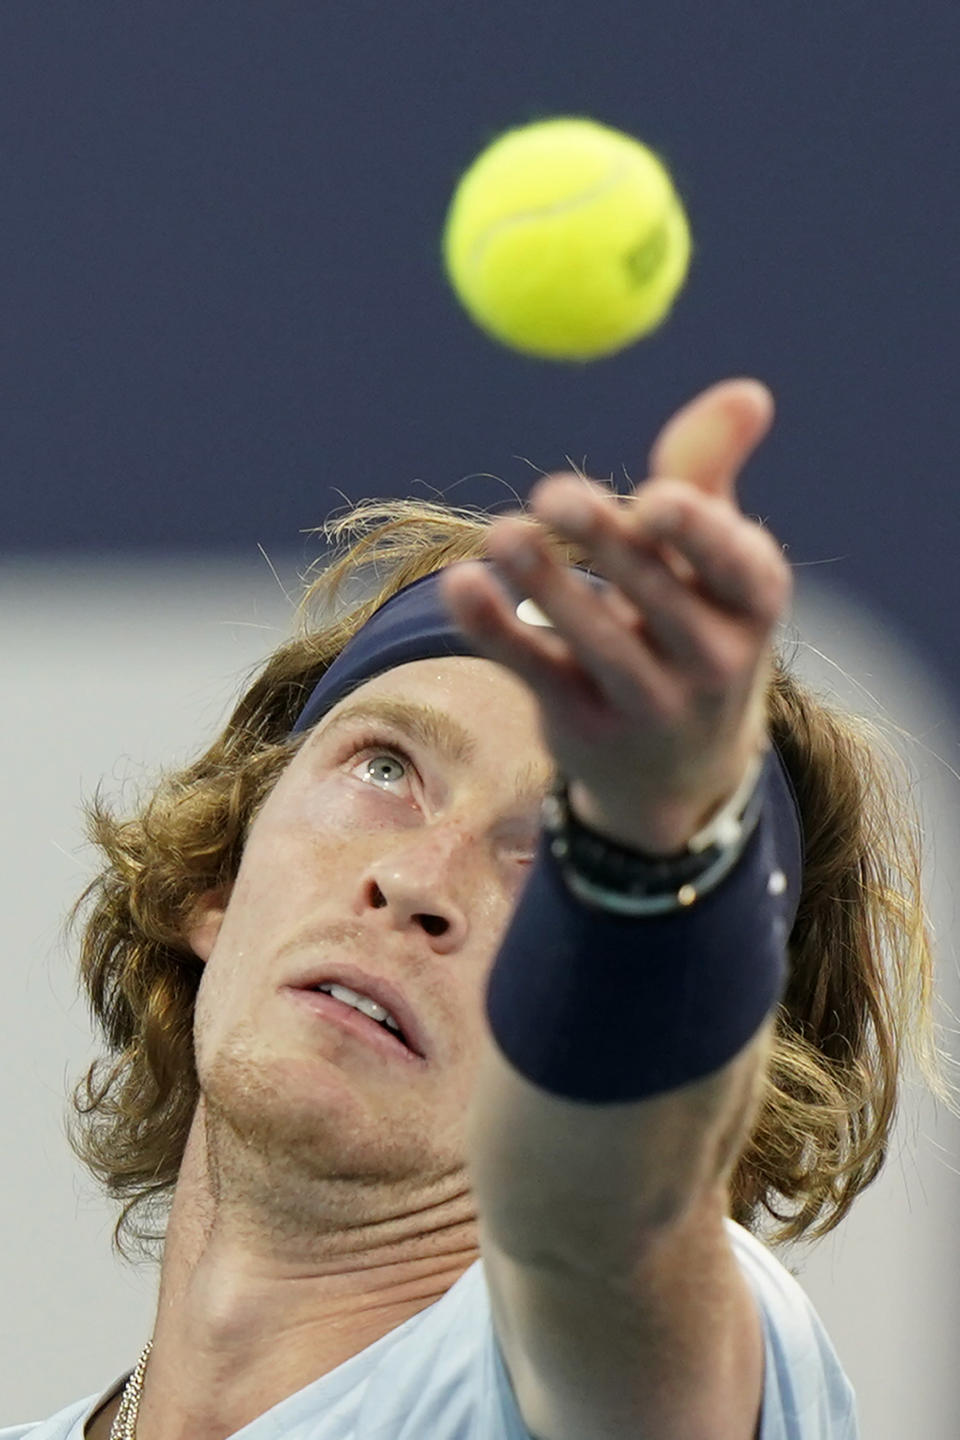 Andrey Rublev, of Russia, serves to Hubert Hurkacz, of Poland, during the Miami Open tennis tournament Friday, April 2, 2021, in Miami Gardens, Fla. (AP Photo/Wilfredo Lee)